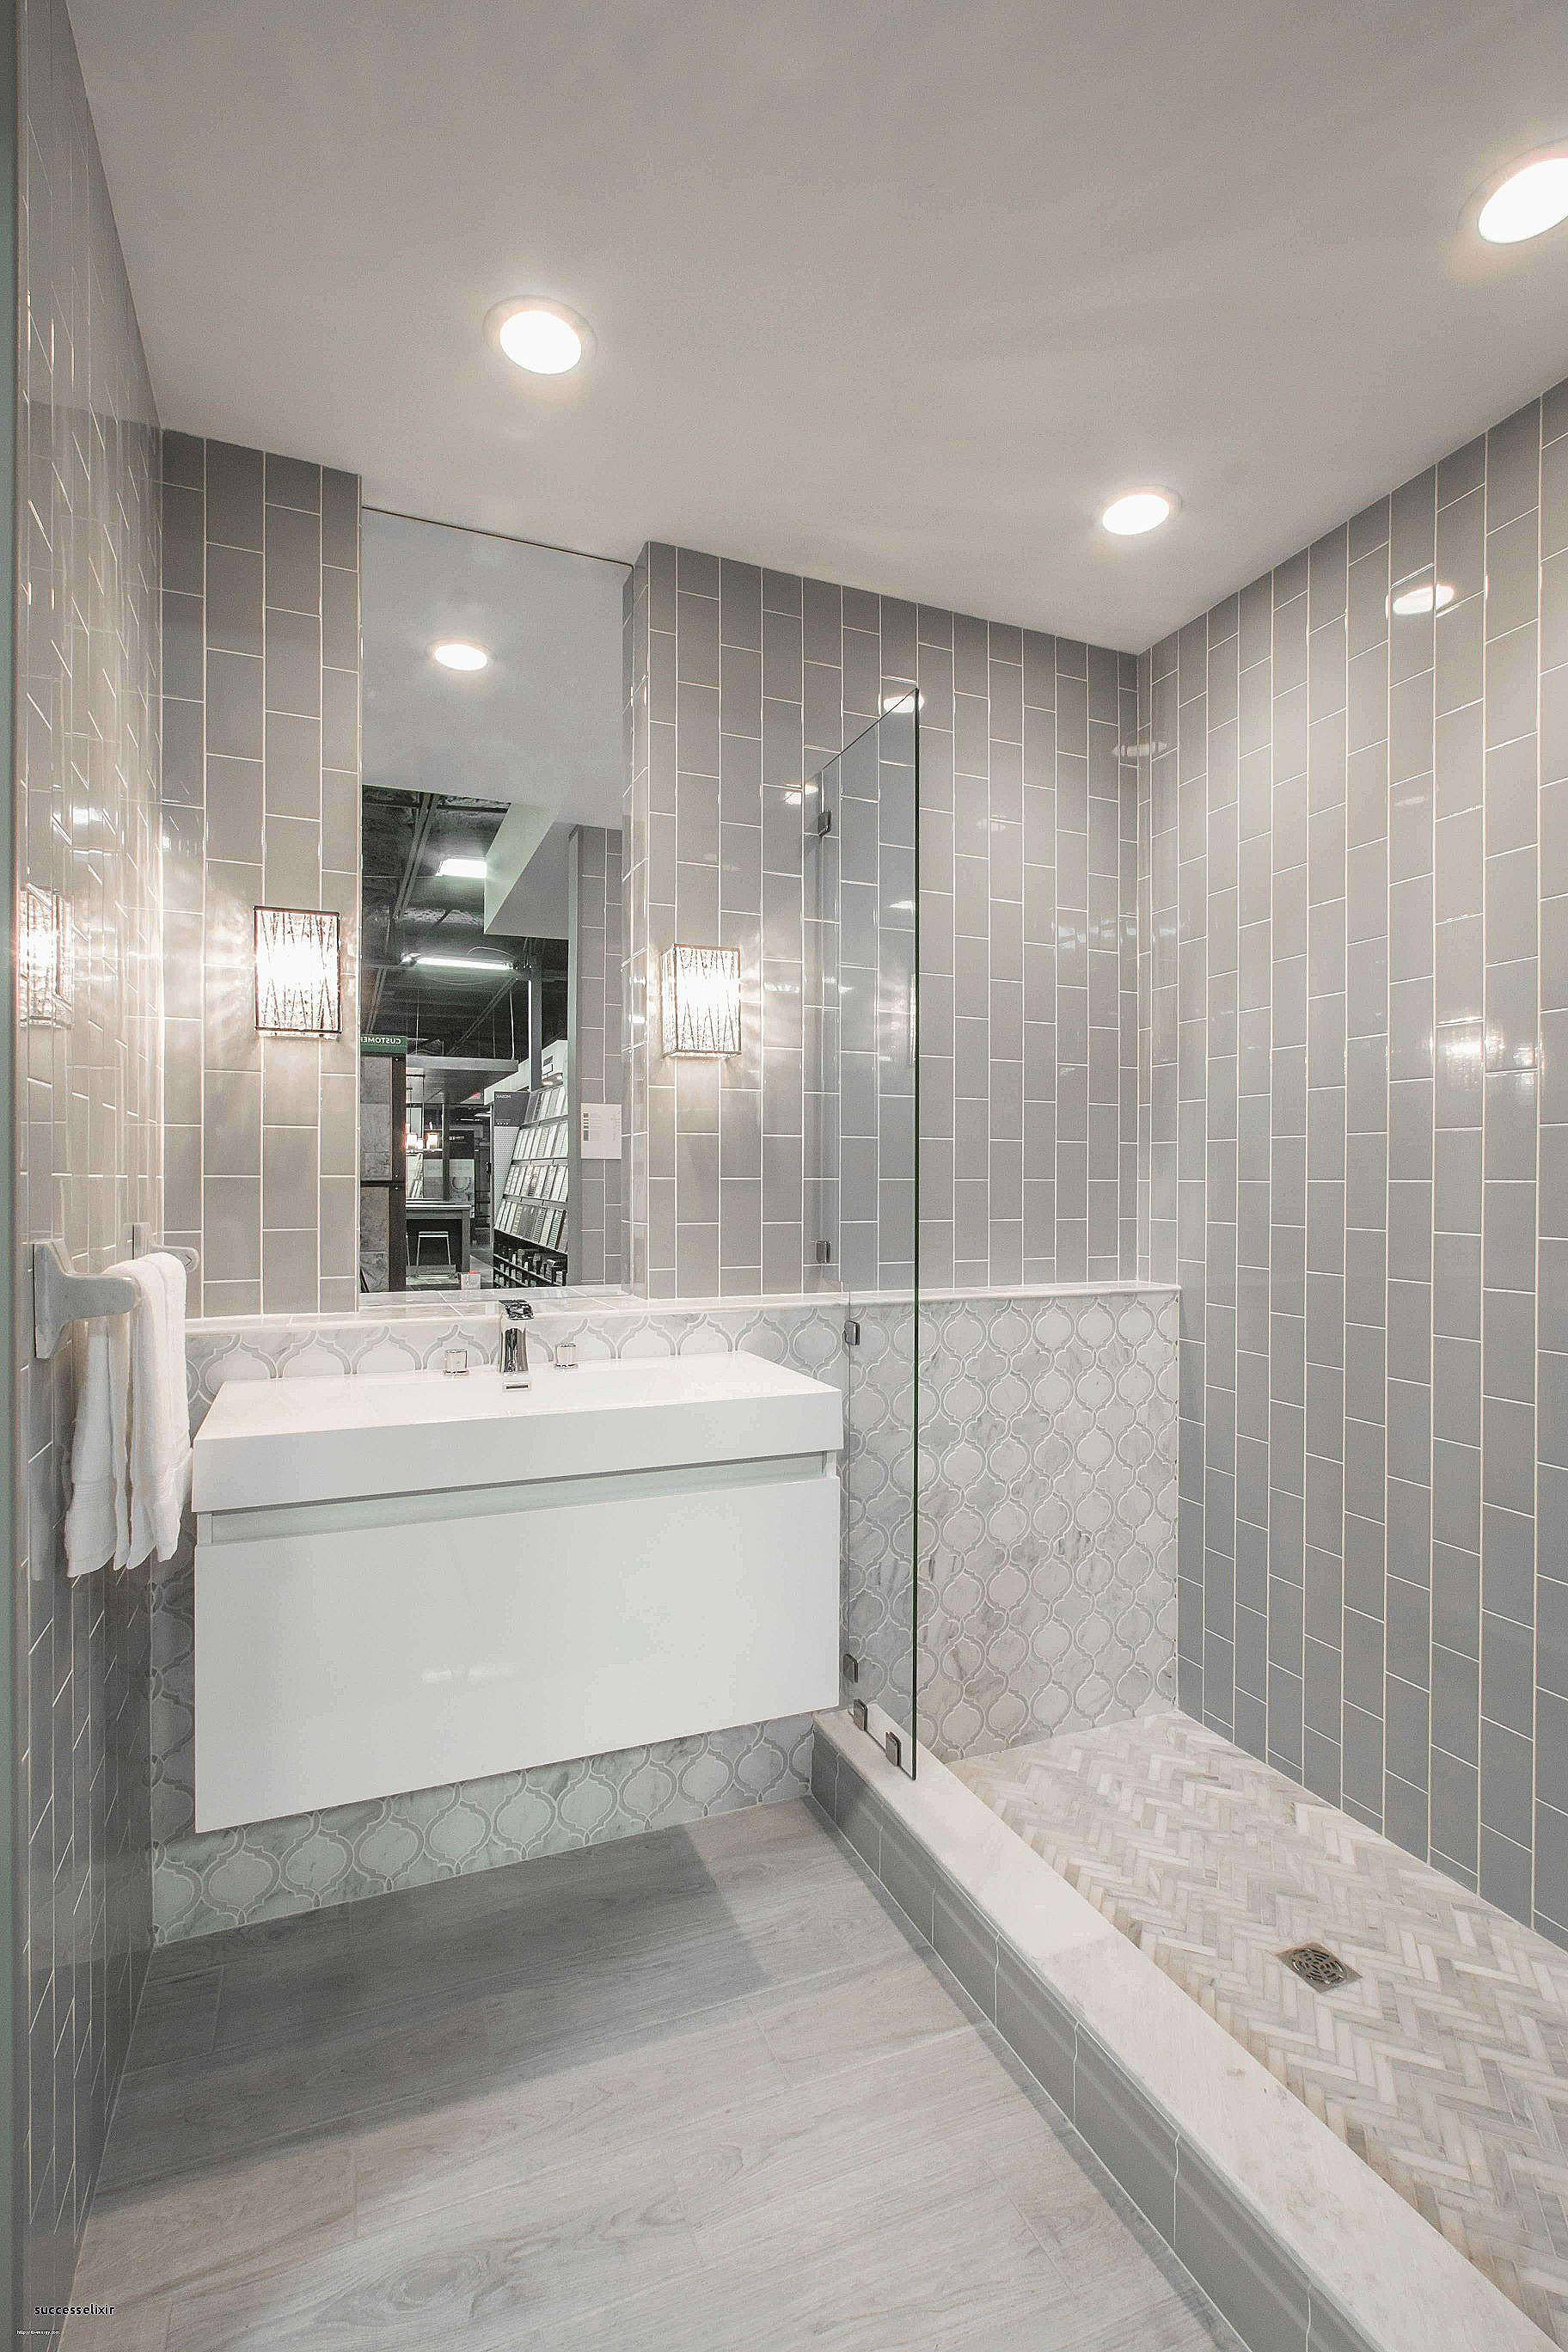 shower room ideas for small bathrooms awesome 41 luxury small wet room design ideas of shower room ideas for small bathrooms